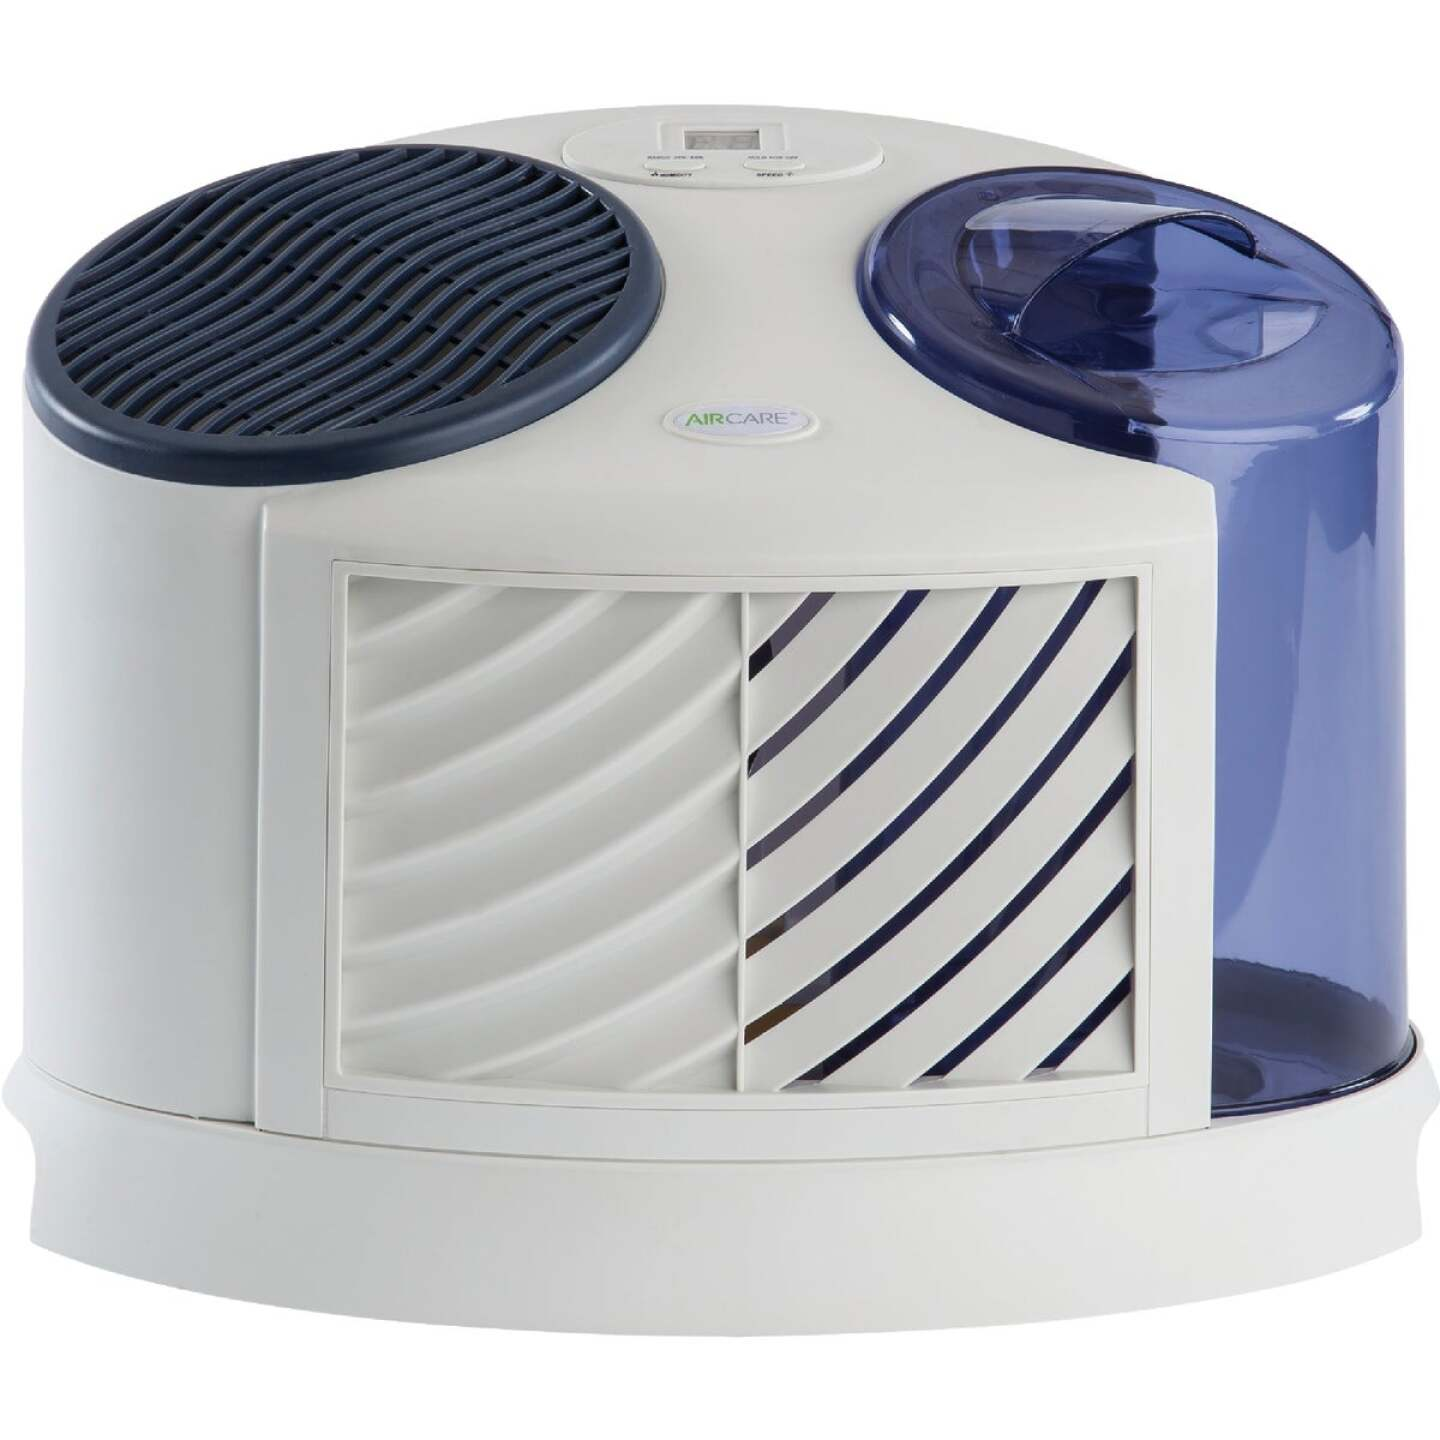 AirCare 2 Gal. Capacity 1000 Sq. Ft. Tabletop Evaporative Humidifier Image 3